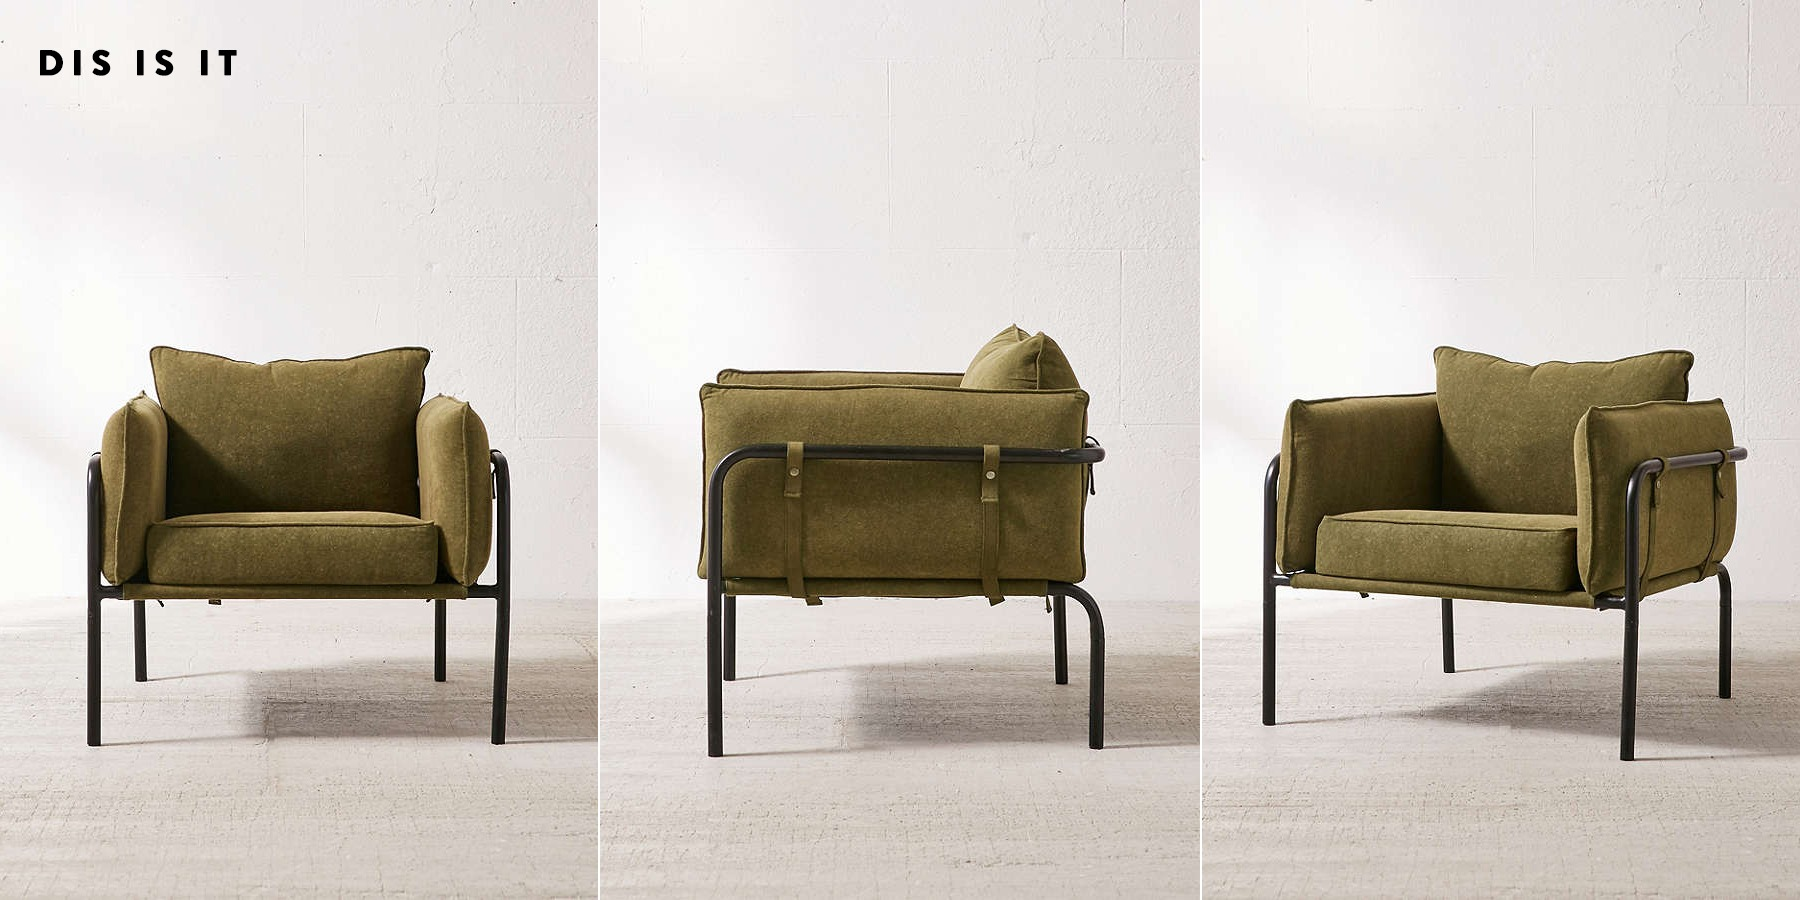 Army Green Chairs for the Fireplace